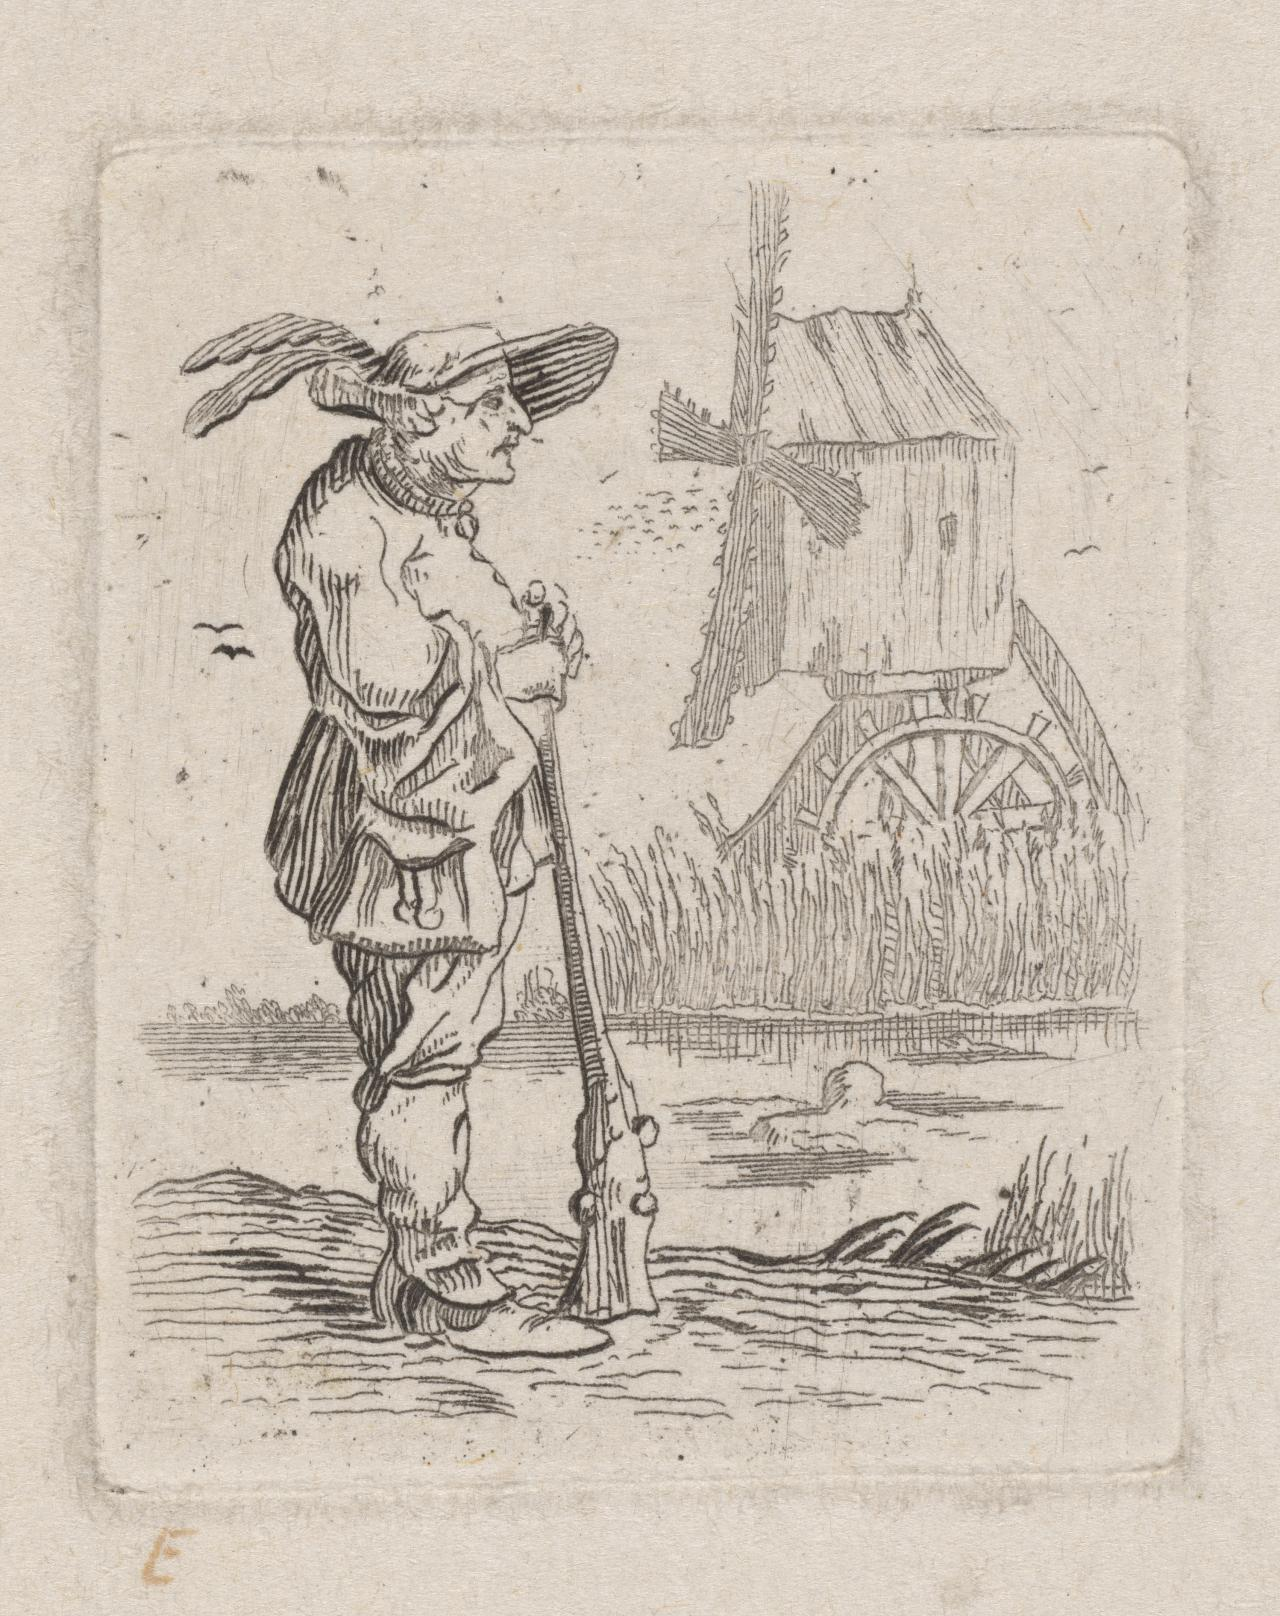 Man with shovel and dog